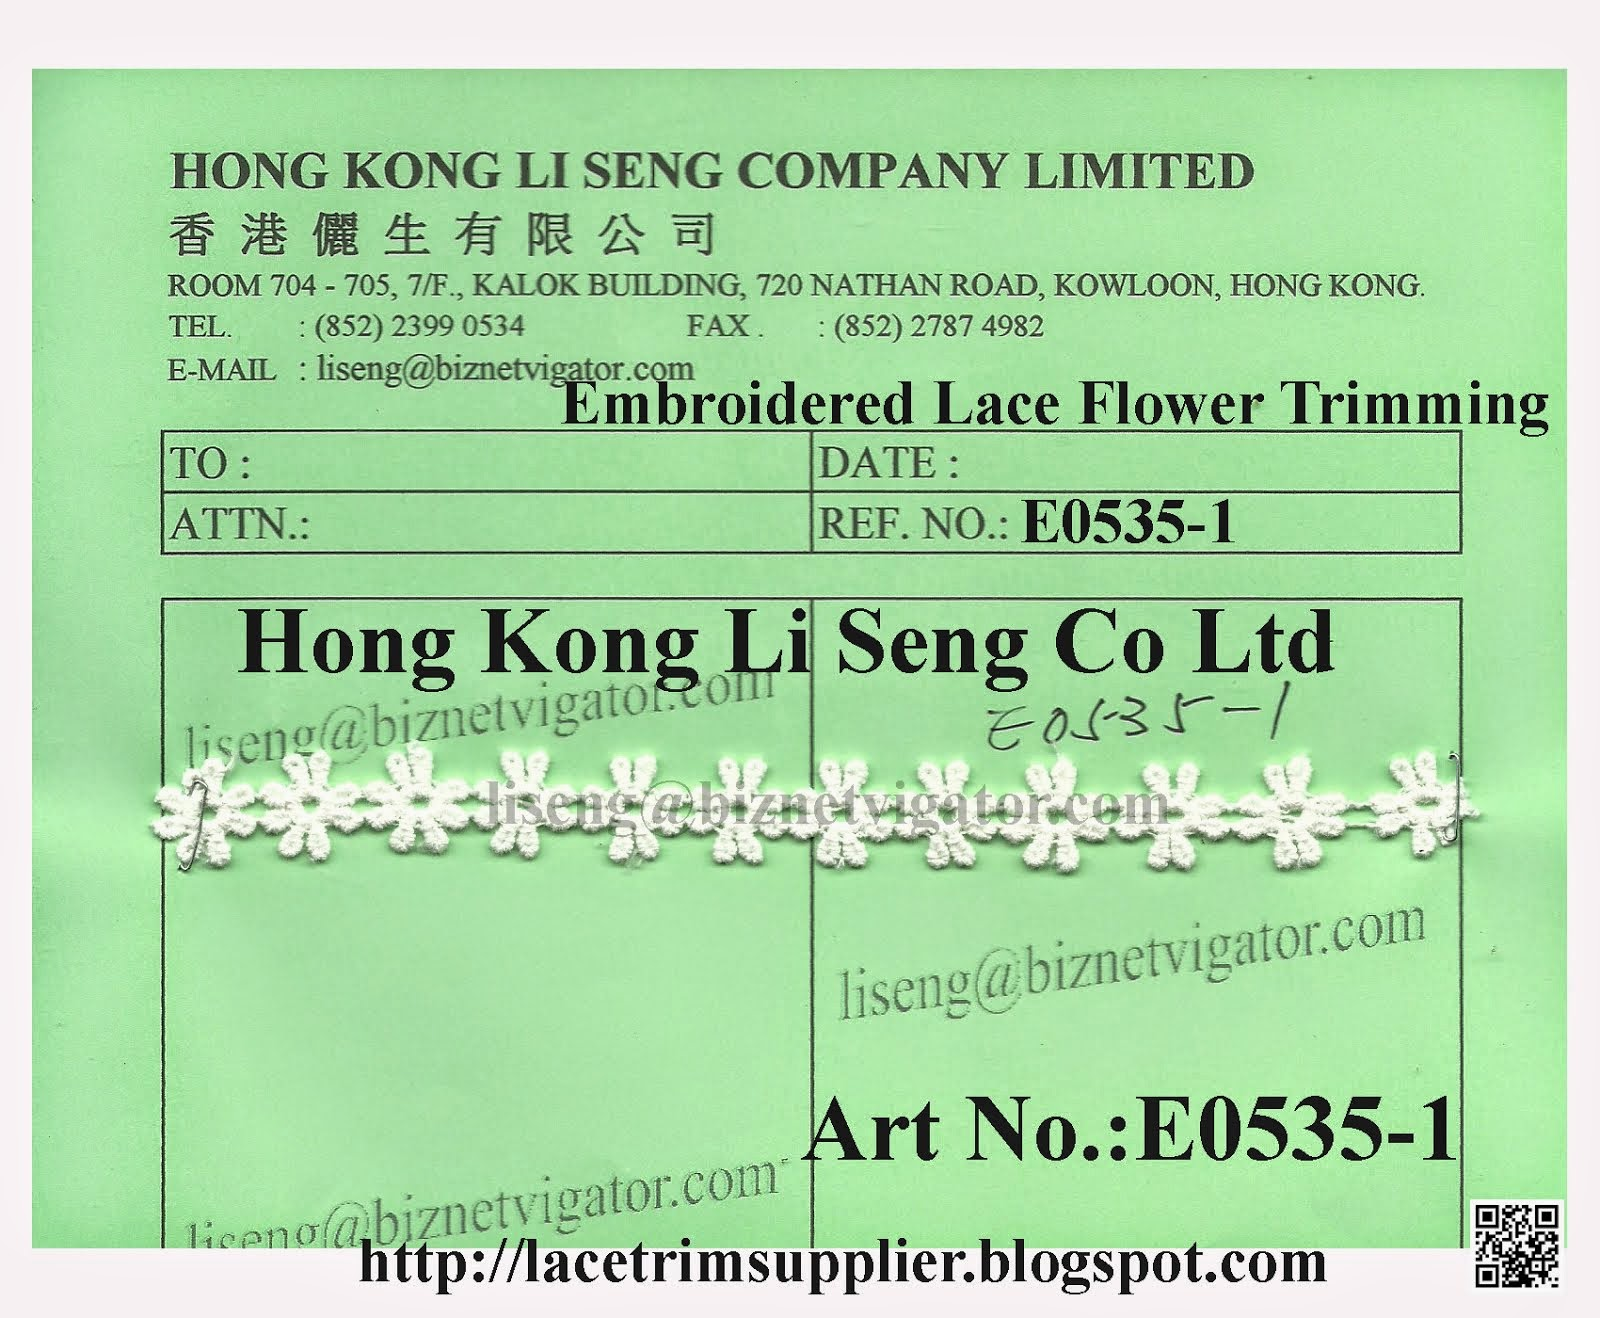 Embroidered Lace Flower Trimming Factory - Hong Kong Li Seng Co Ltd